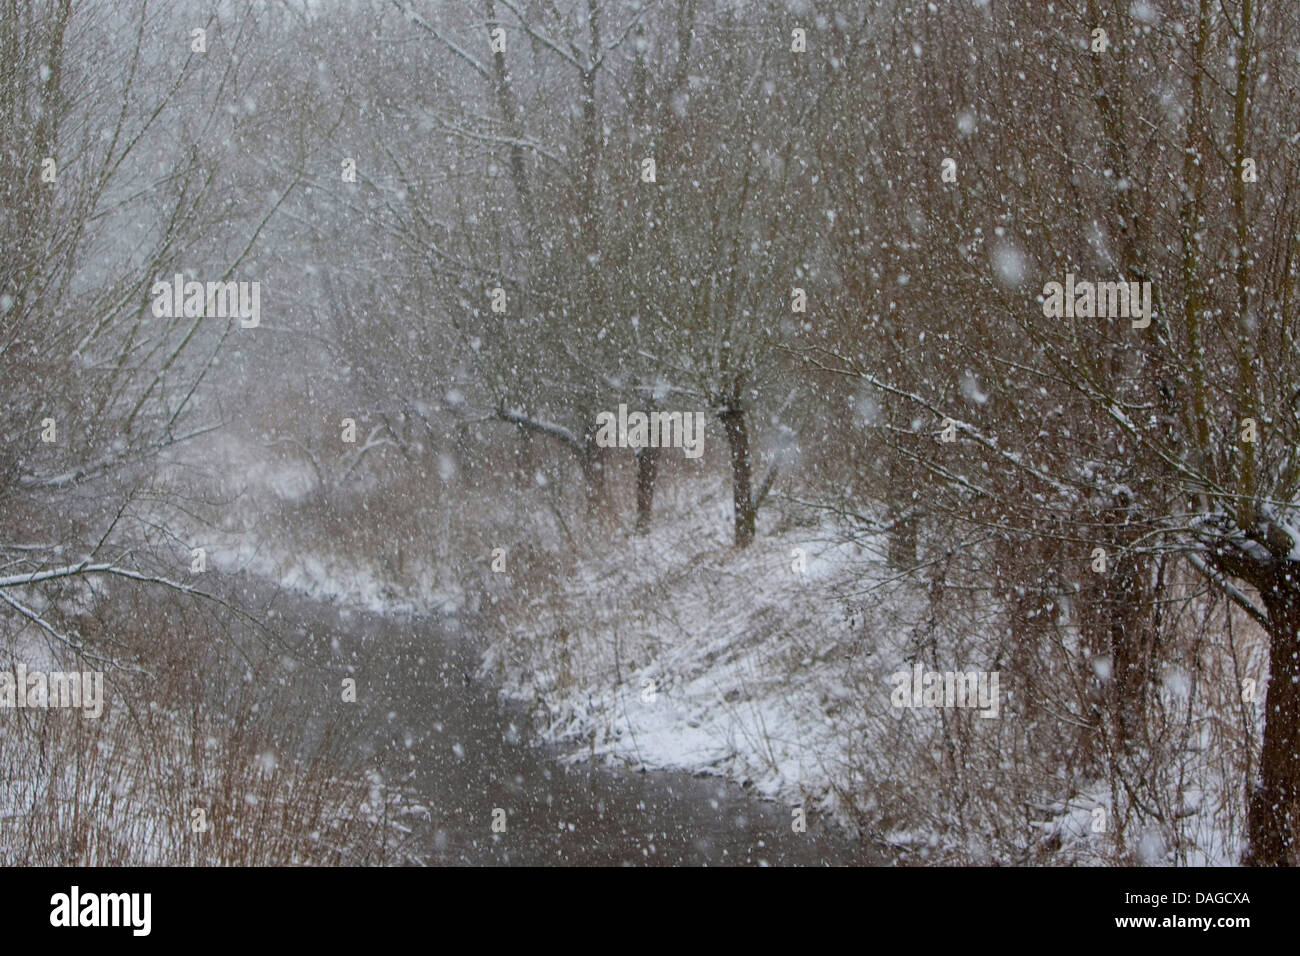 snowfall in winter at a creek, Germany - Stock Image